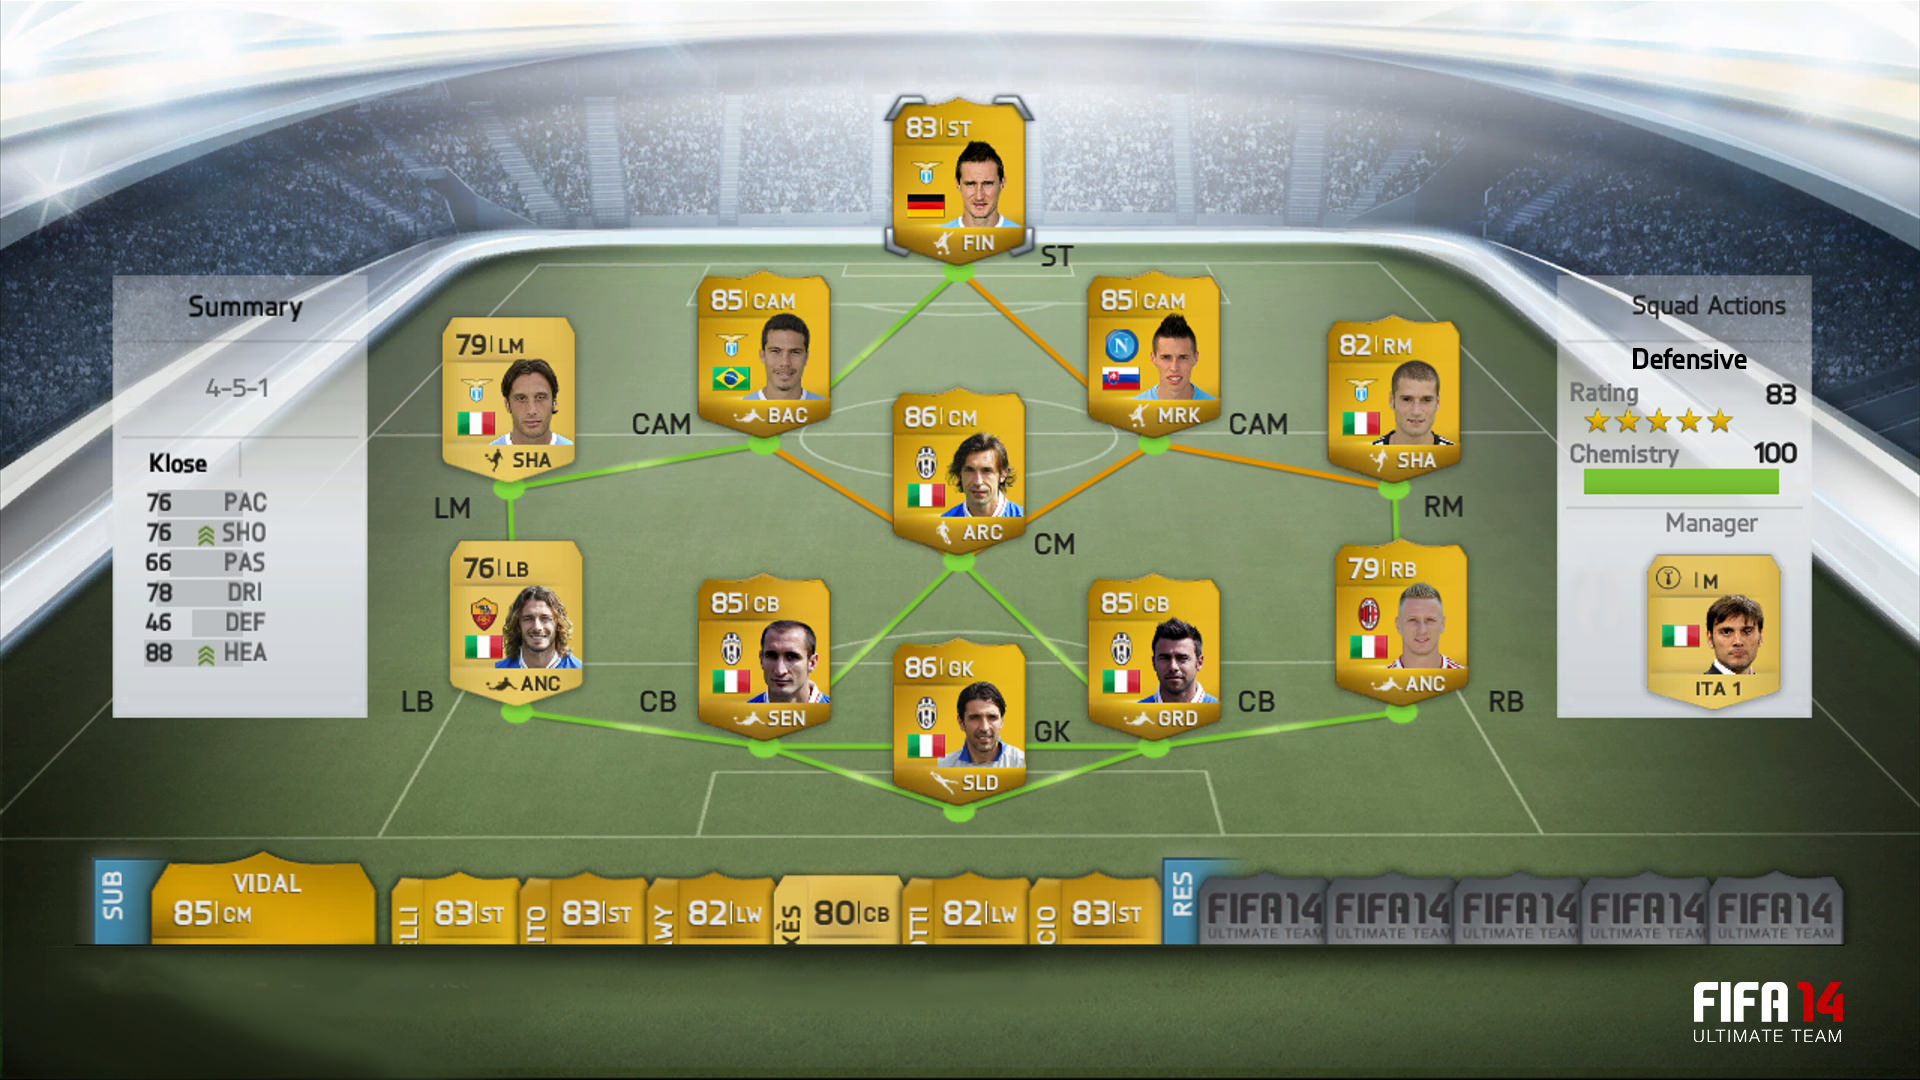 FIFA 14 Ultimate Team Screenshots